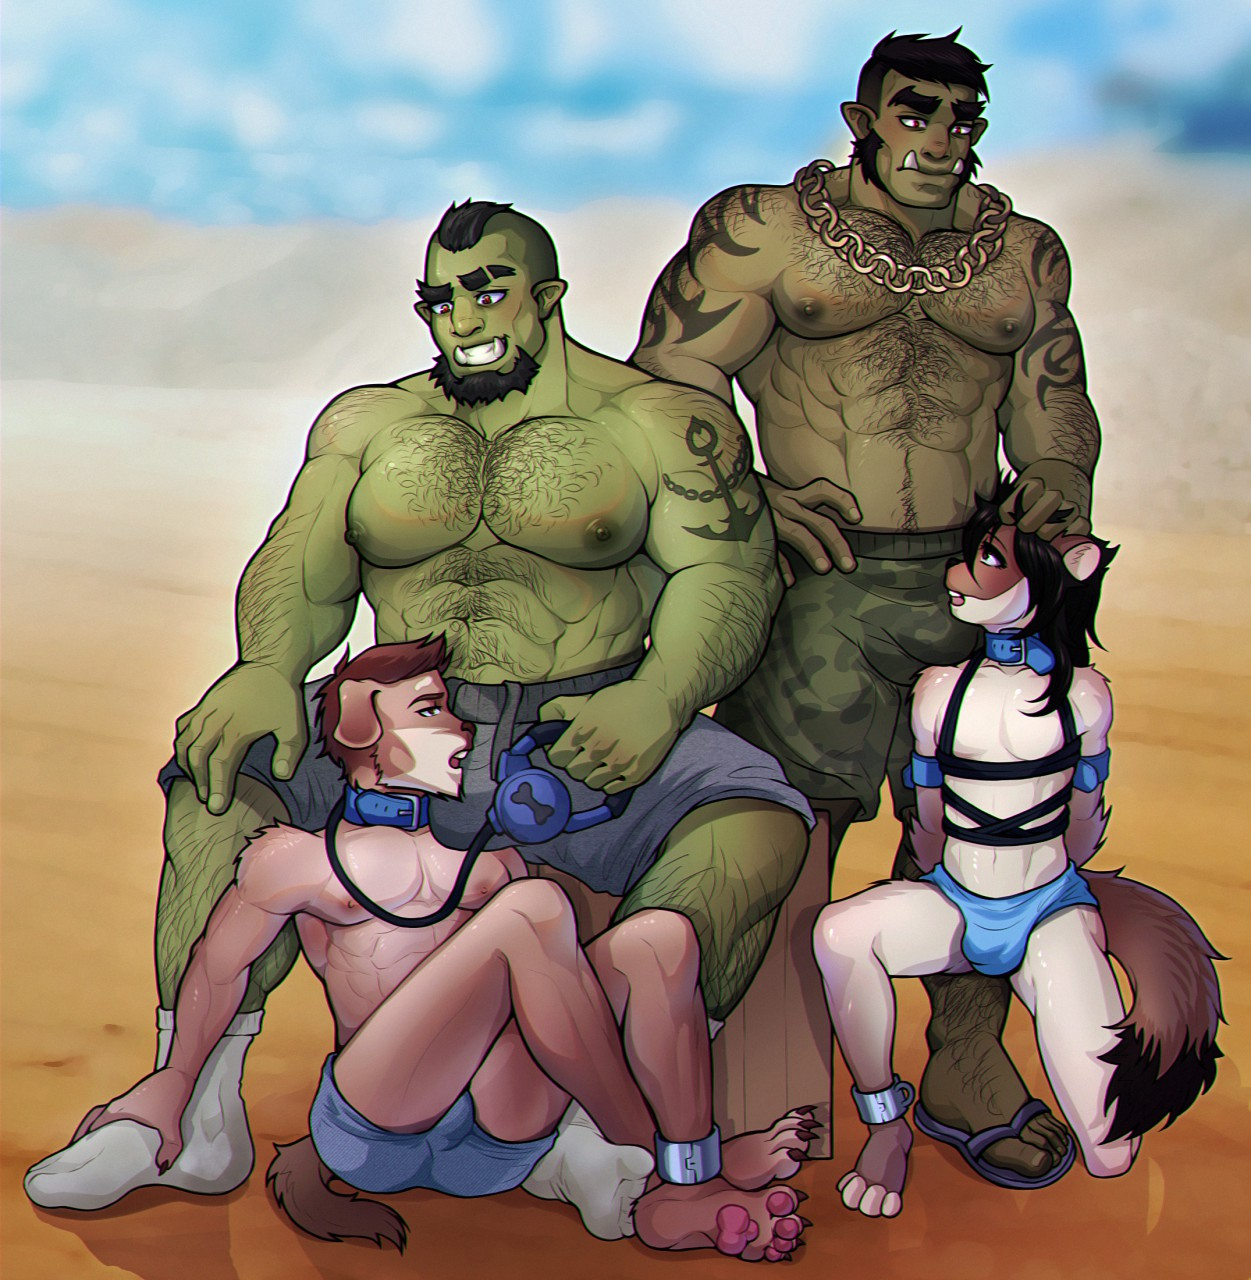 1564943239.blueglueclue_orcsanddogs.png